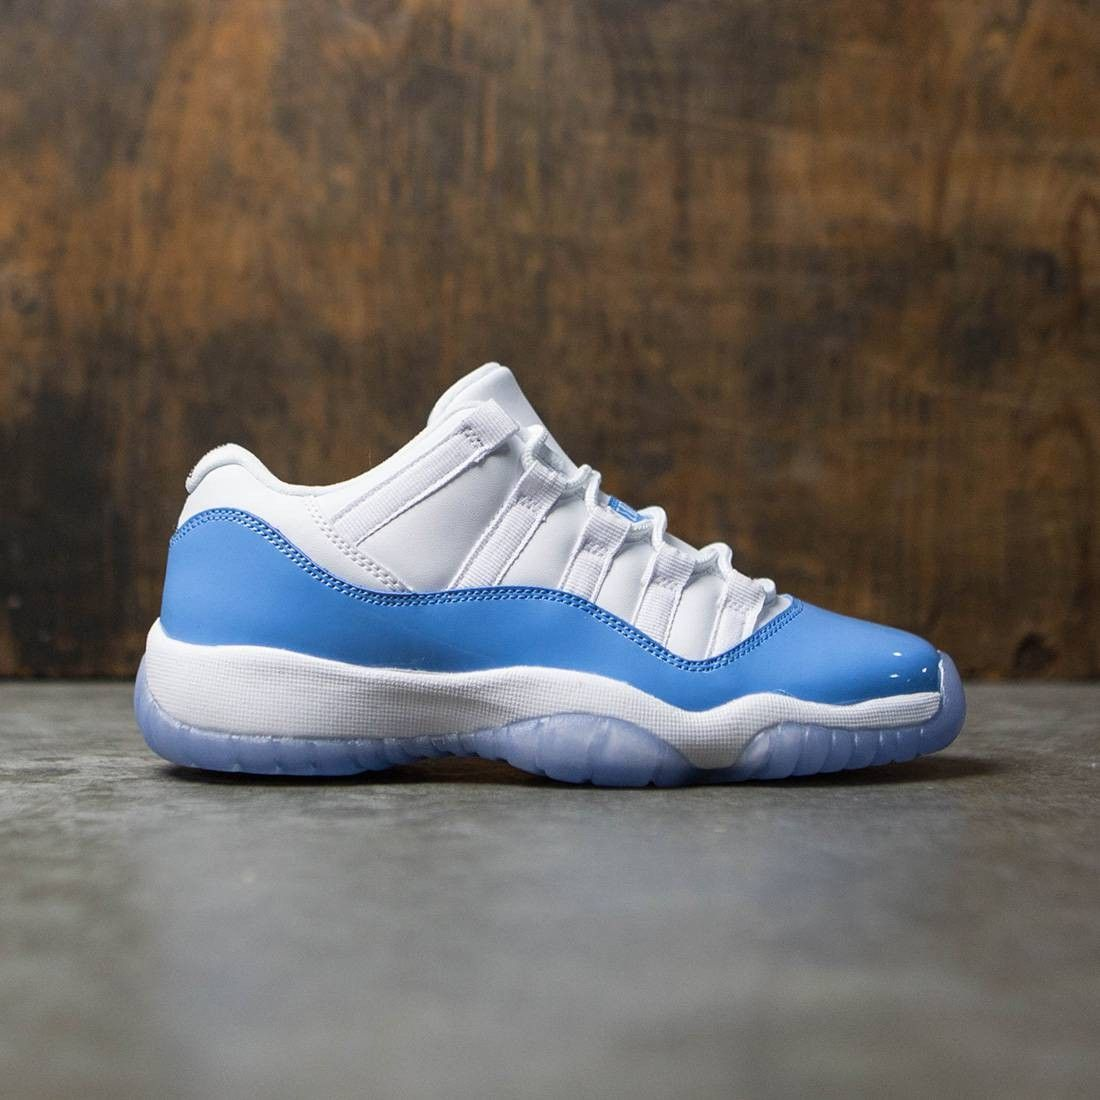 a5725f128f58b Air Jordan 11 Retro Low (GS) Big Kids (white / university blue ...